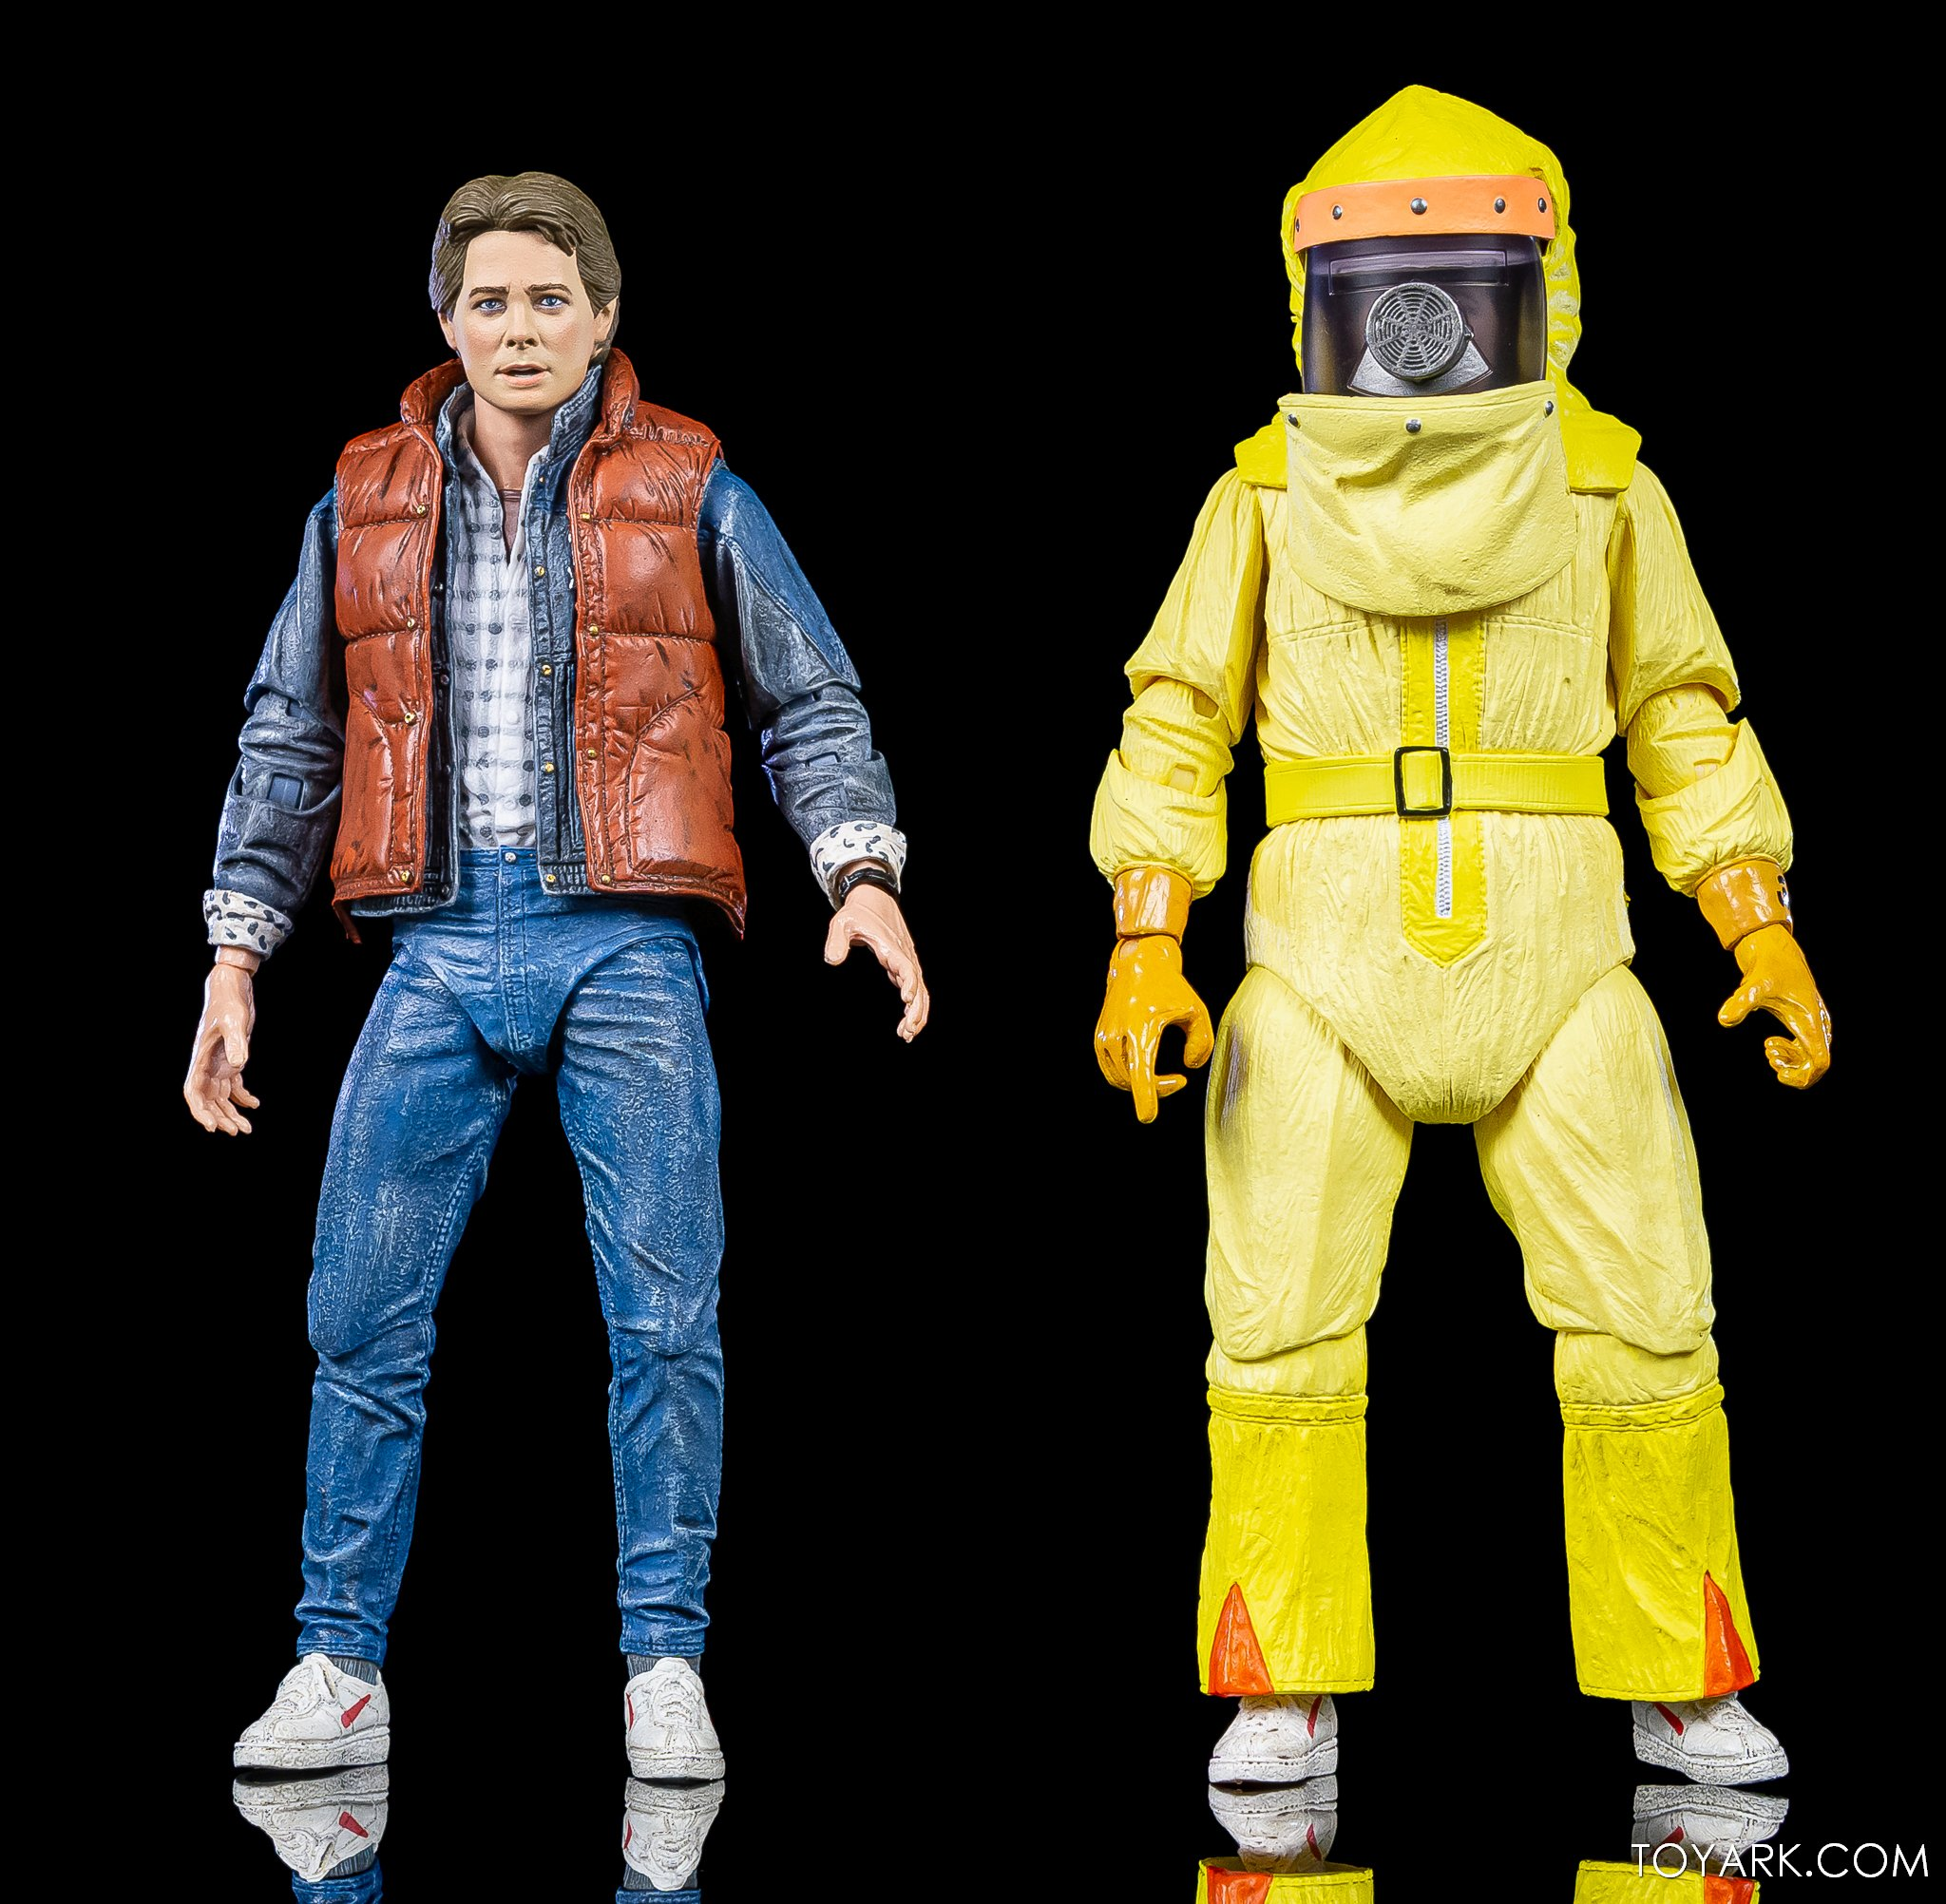 https://news.toyark.com/wp-content/uploads/sites/4/2020/10/NECA-Ultimate-TFS-Marty-McFly-Figure-017.jpg